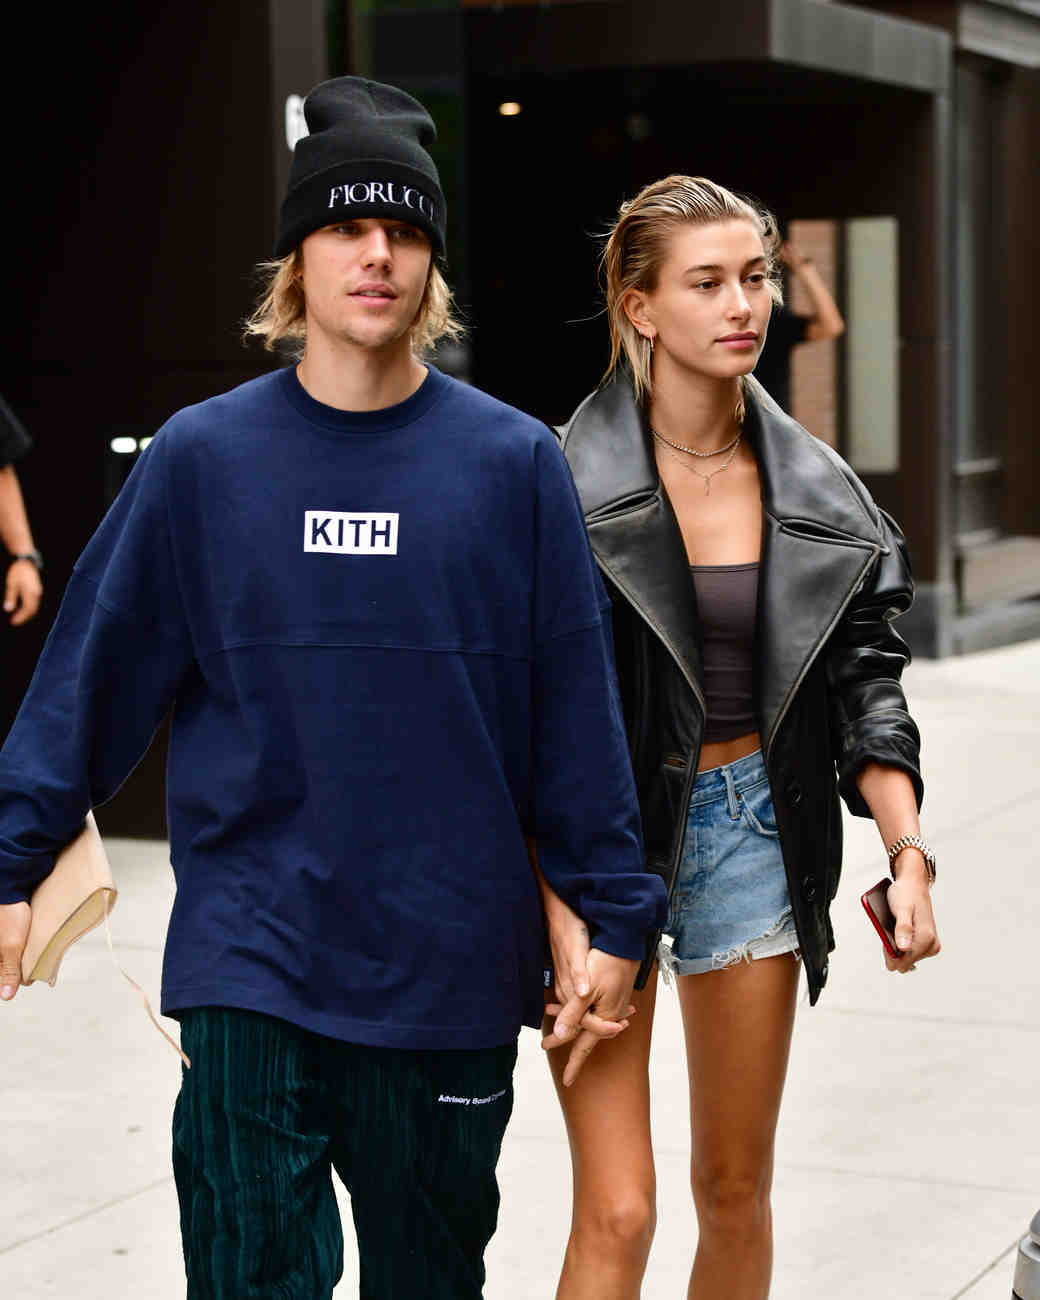 justin bieber and hailey baldwin walking together